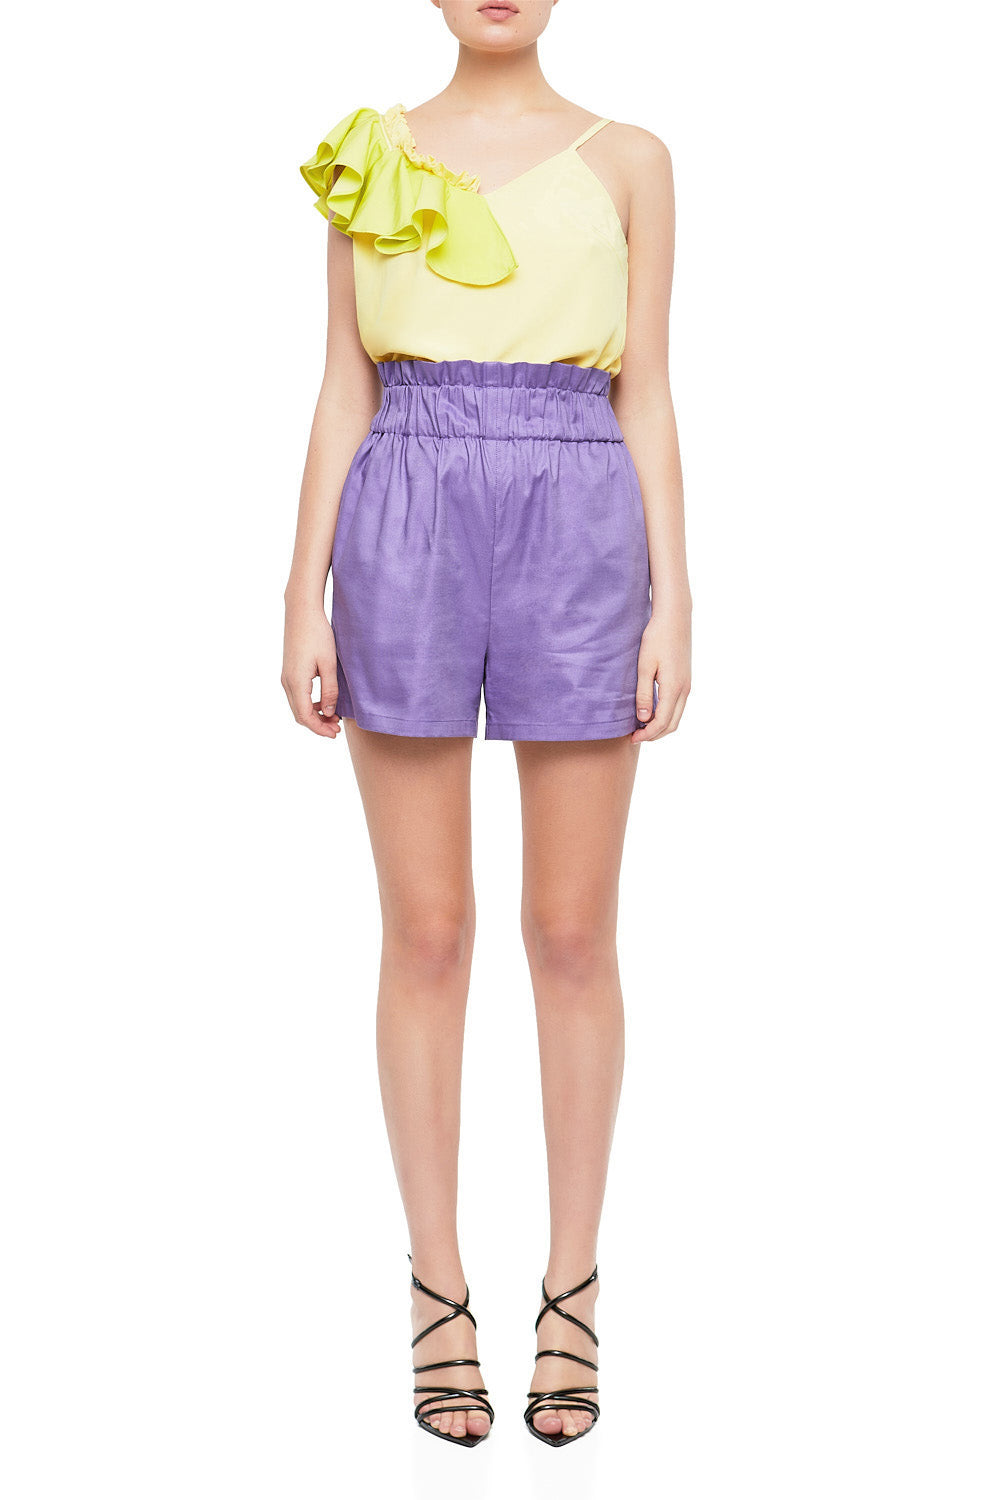 JOICE Cotton Boyfriend Short | HAUS OF SONG